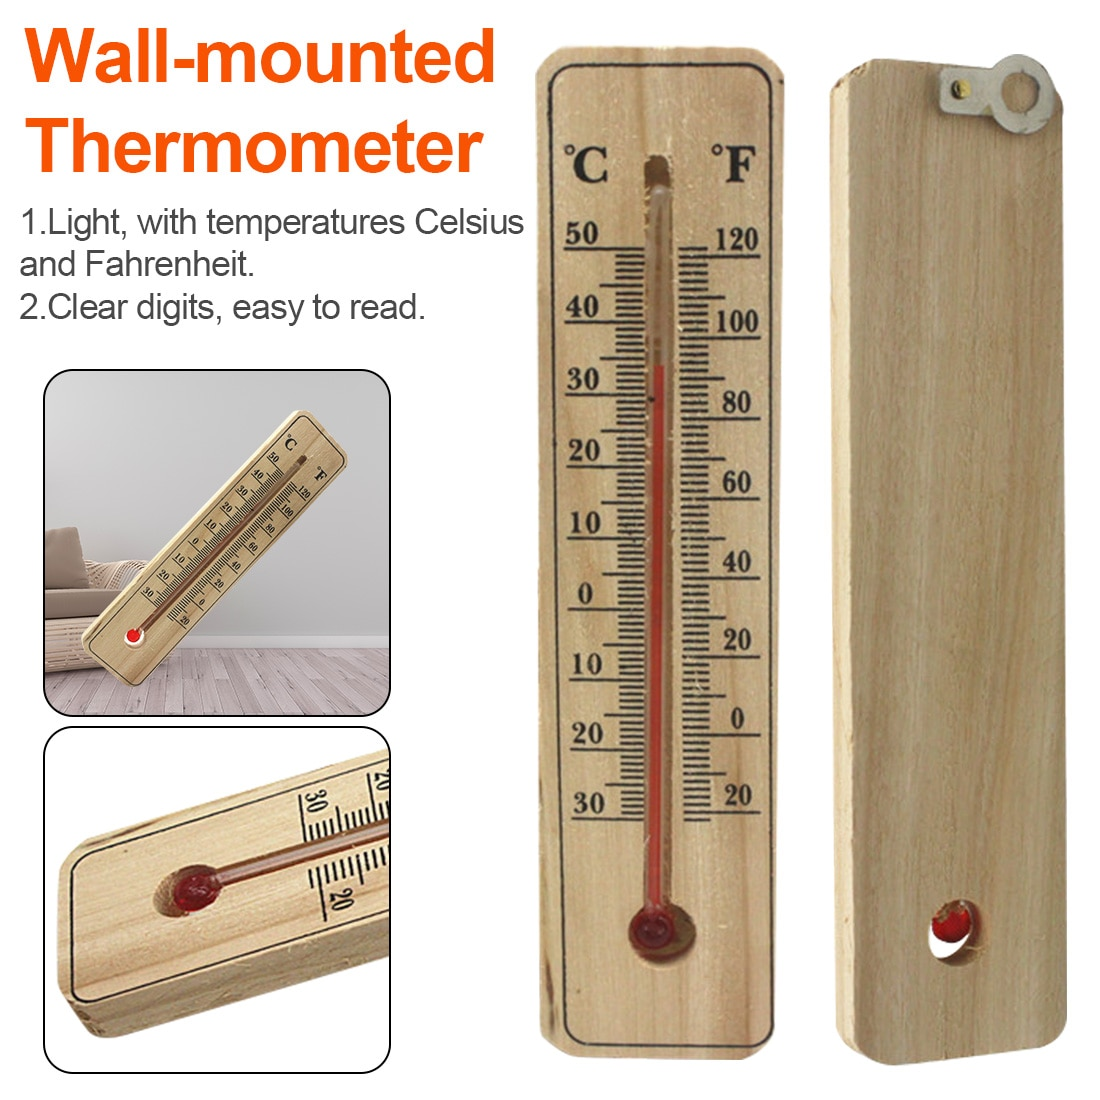 Wood Grain Hanging Vertical Indoor Thermometer Temperature Meter Monitor Gauge Fahrenheit and Celsius Scales for incubator wall Room